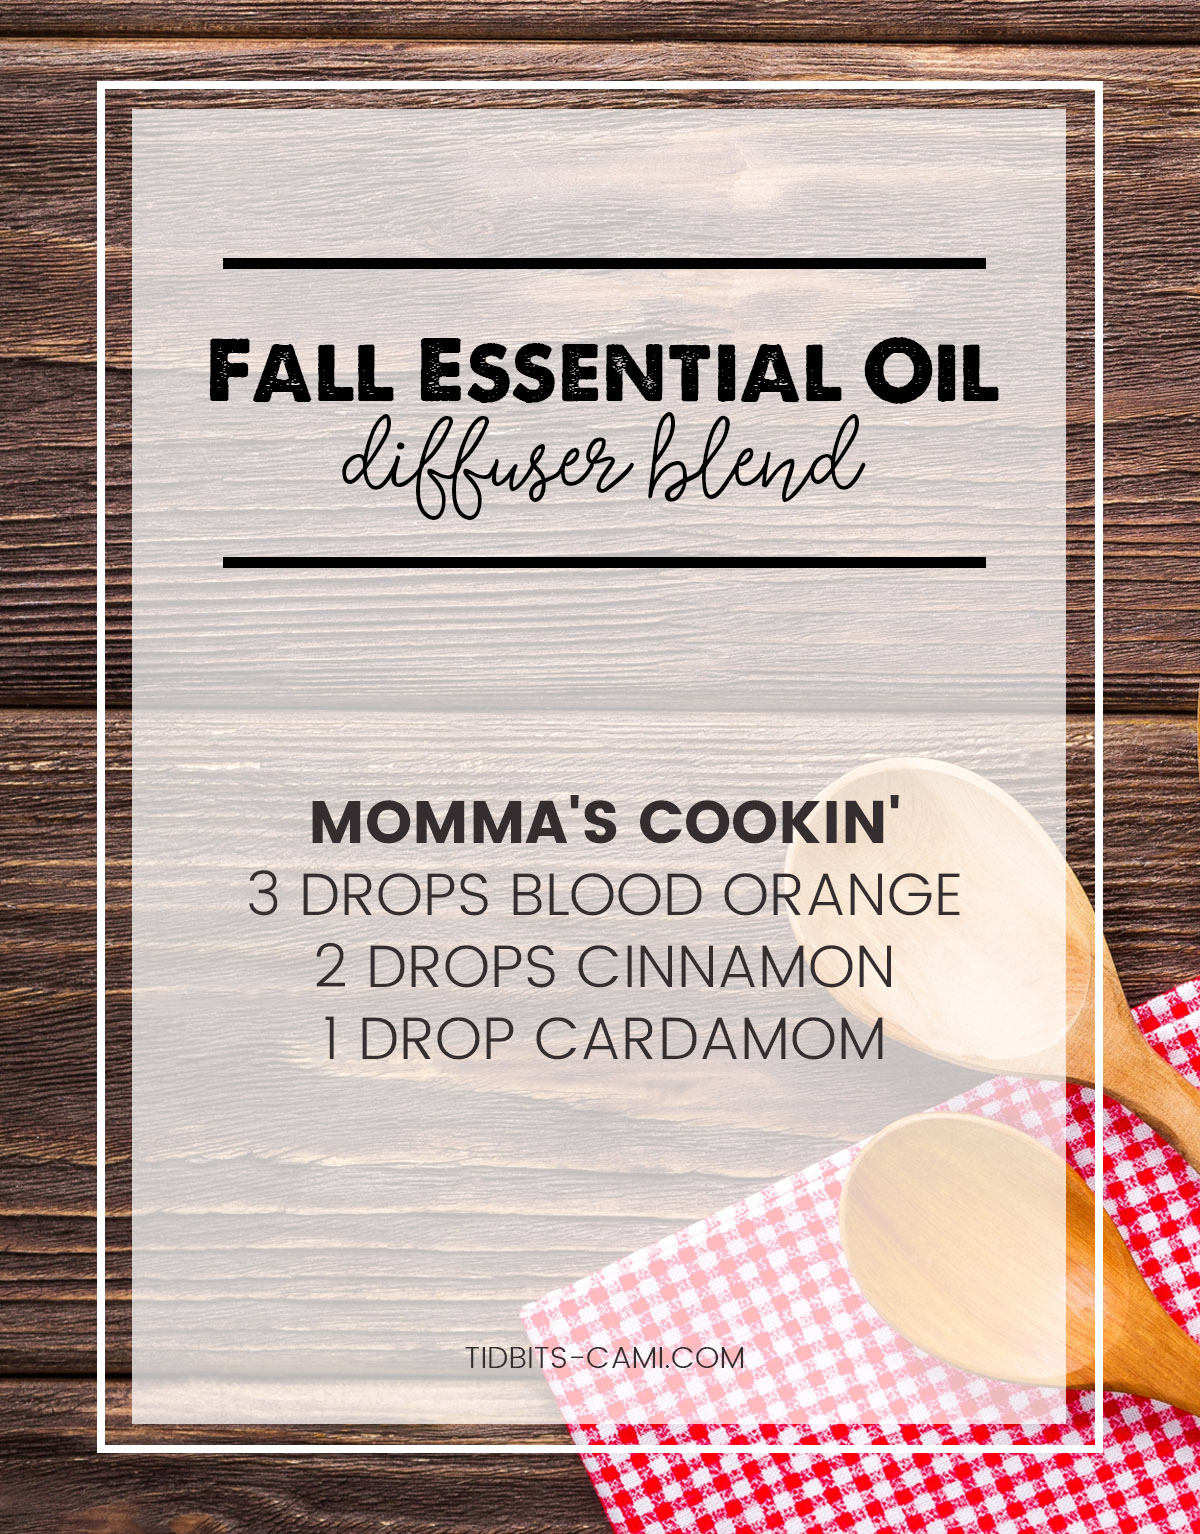 mommas cookin' essential oil diffuser blend